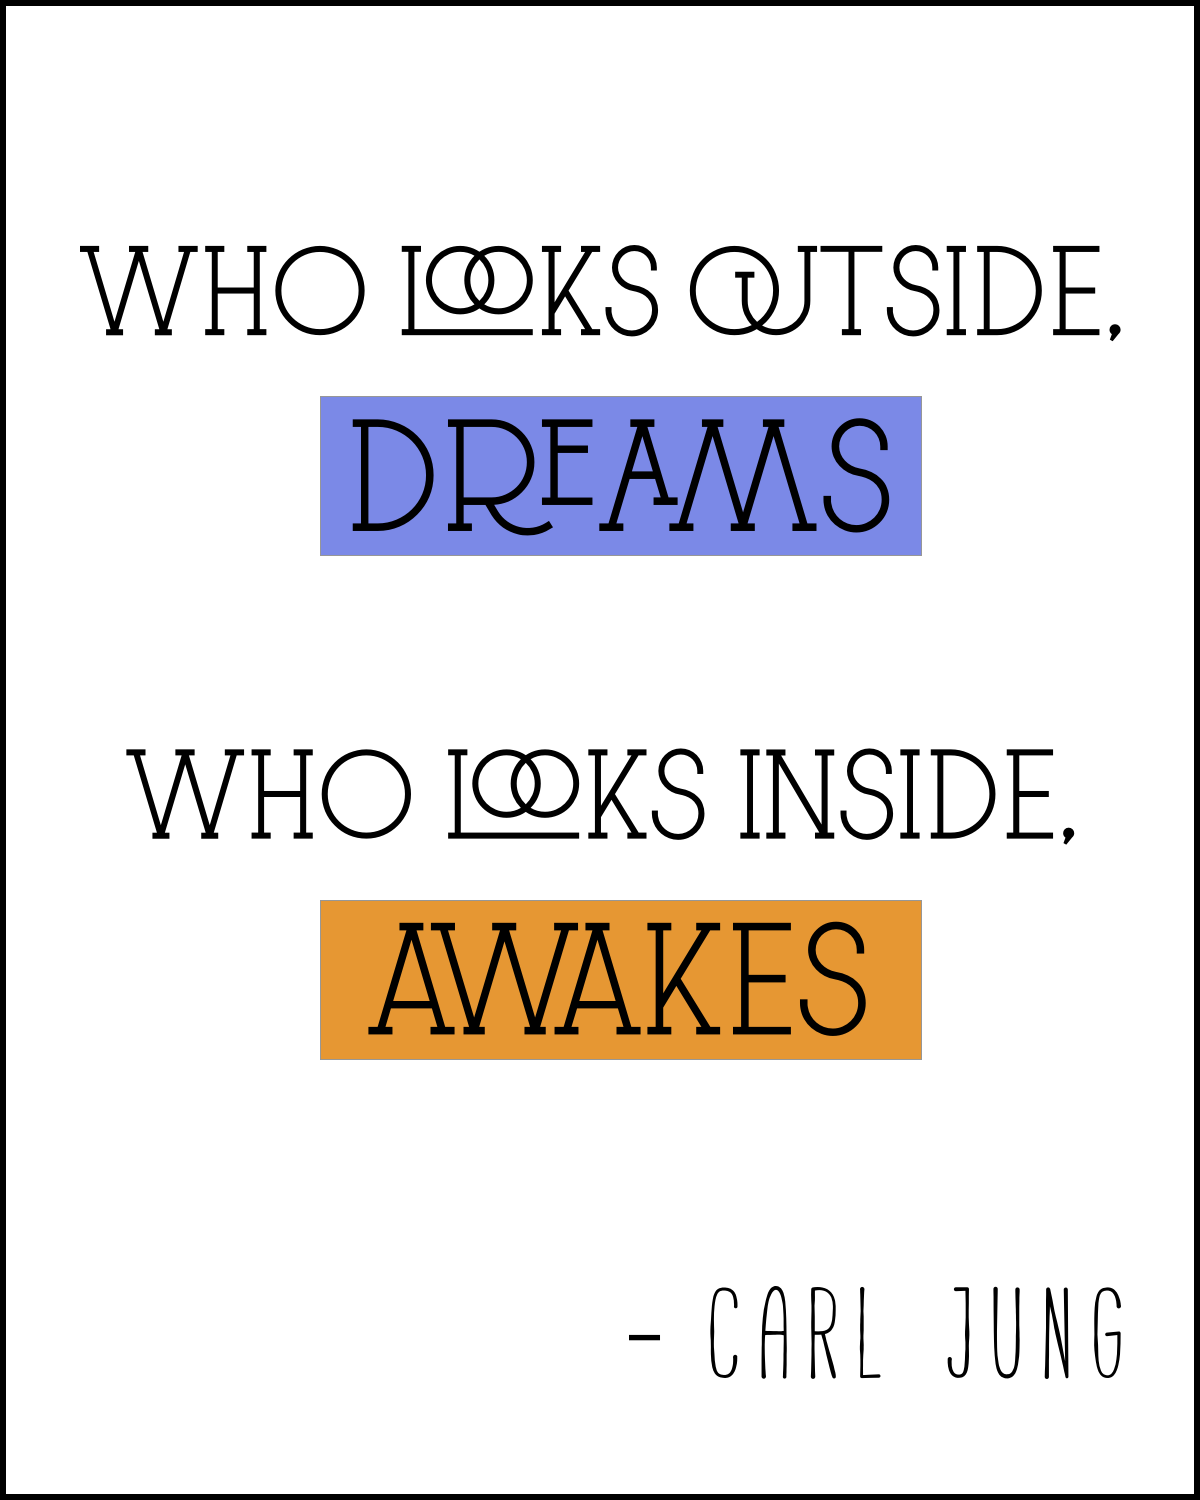 Citaten Jung : Carl jung quote print quotes and phrases